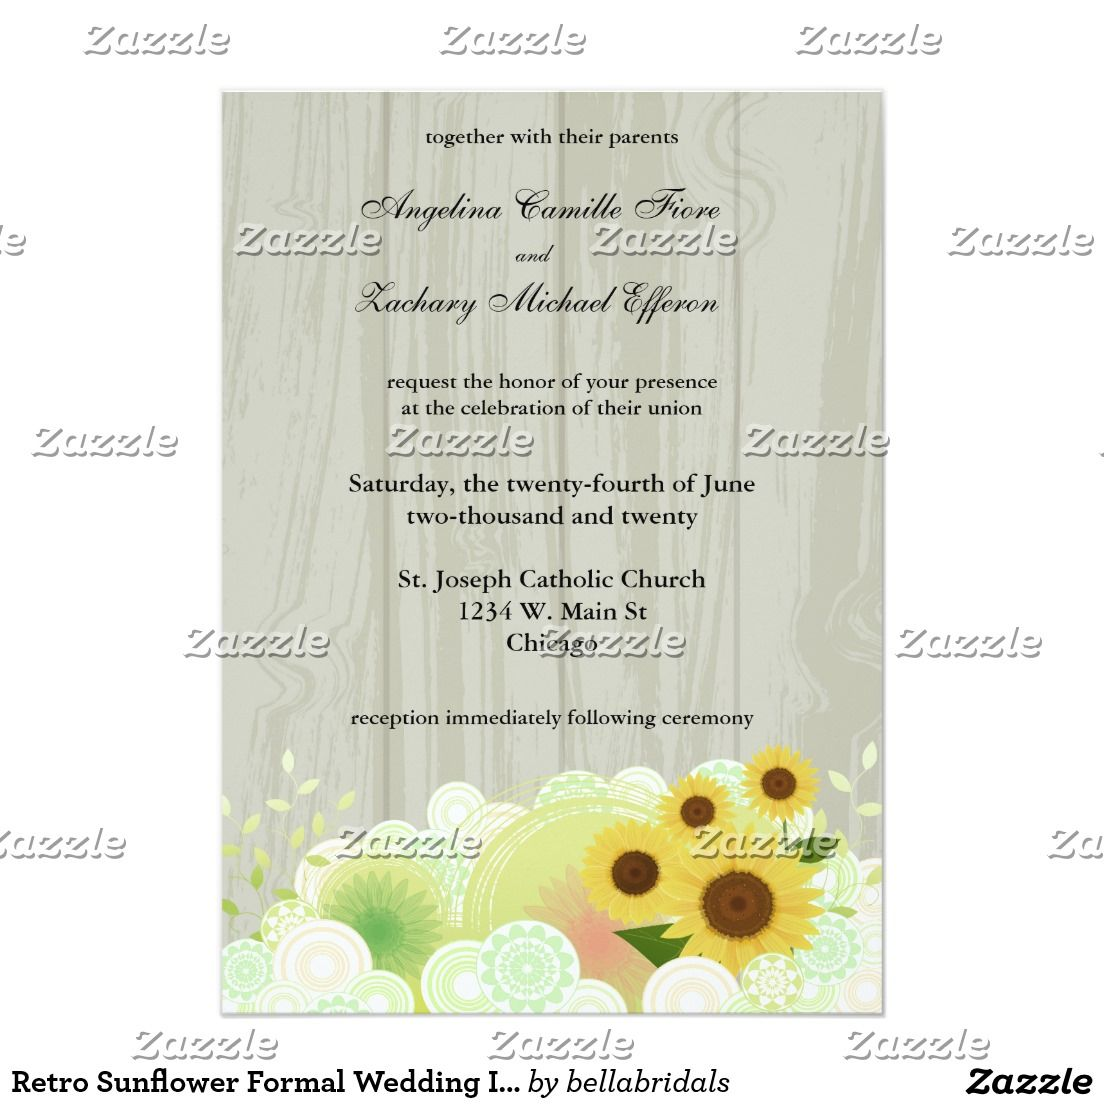 Retro Sunflower Formal Wedding Invitation Formal Wedding